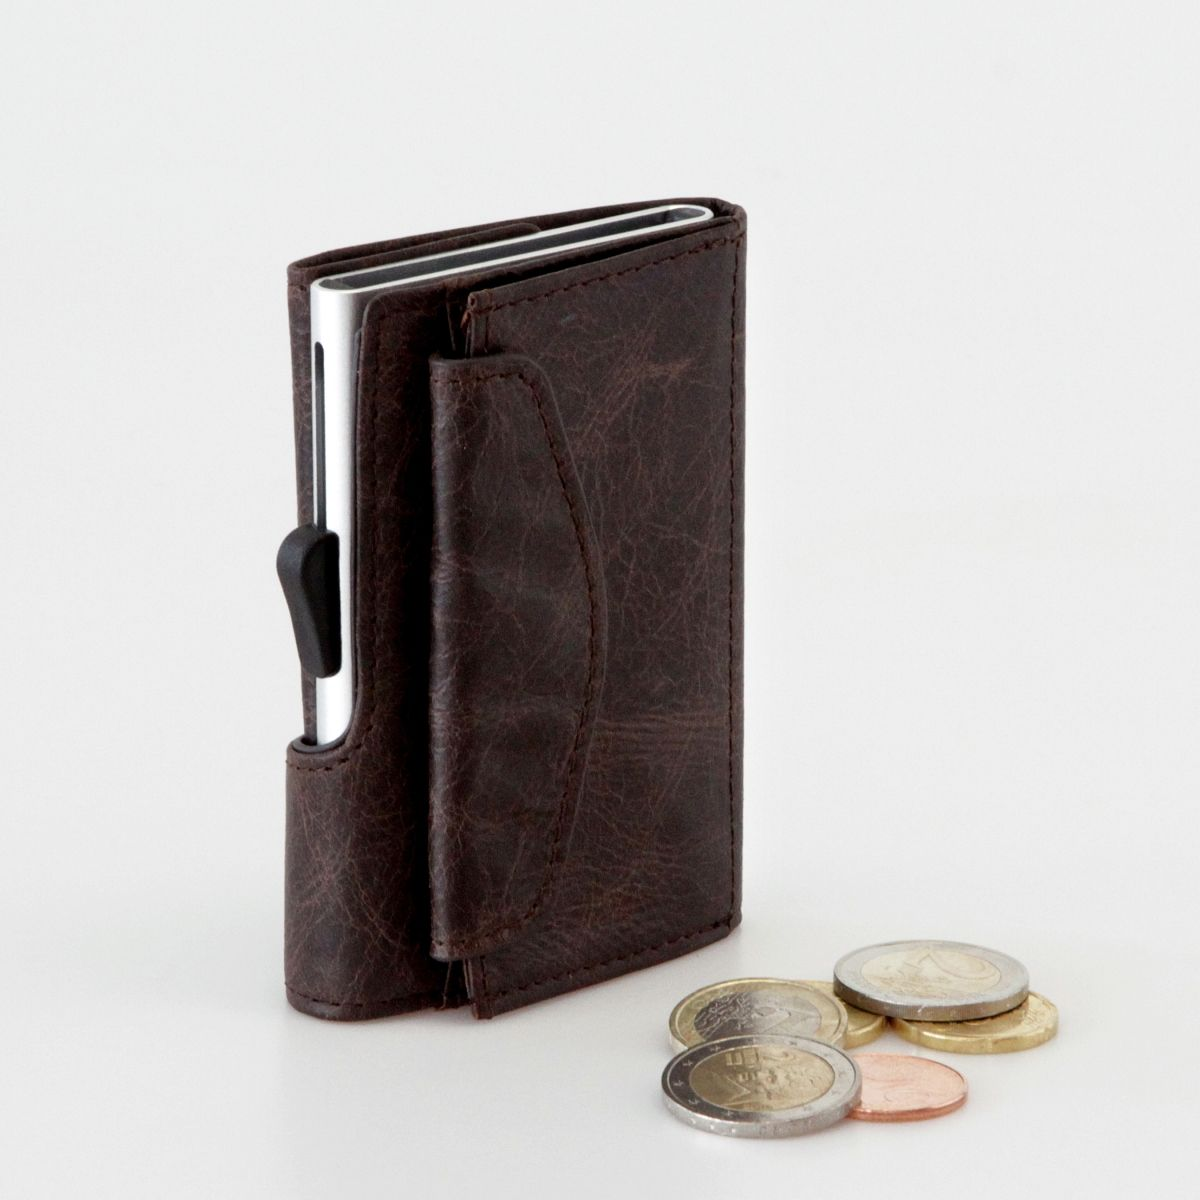 66c1e0ed3e1 C-Secure Aluminum Card Holder with PU Leather with Coin Pouch - Dark Brown